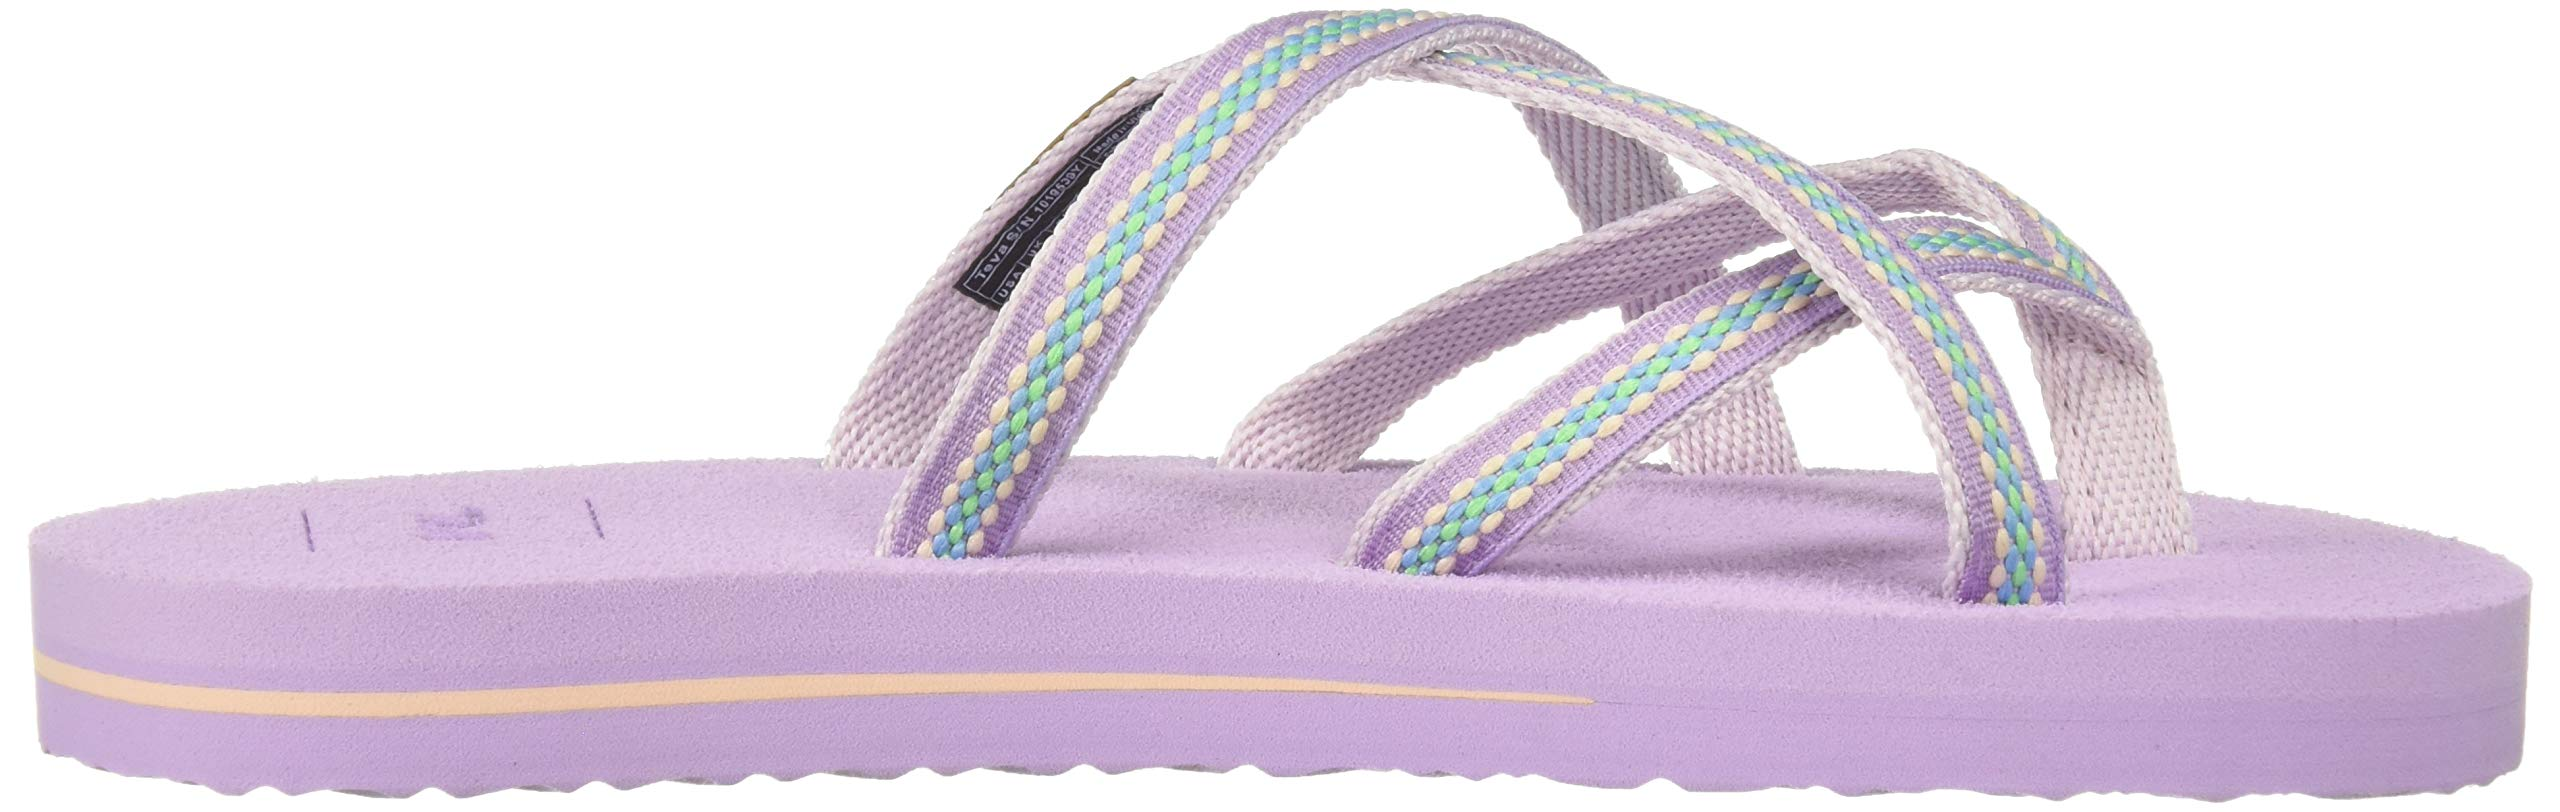 Teva Girls' Y Olowahu Sport Sandal, Lindi Orchid Bloom, 7 Medium US Big Kid by Teva (Image #8)